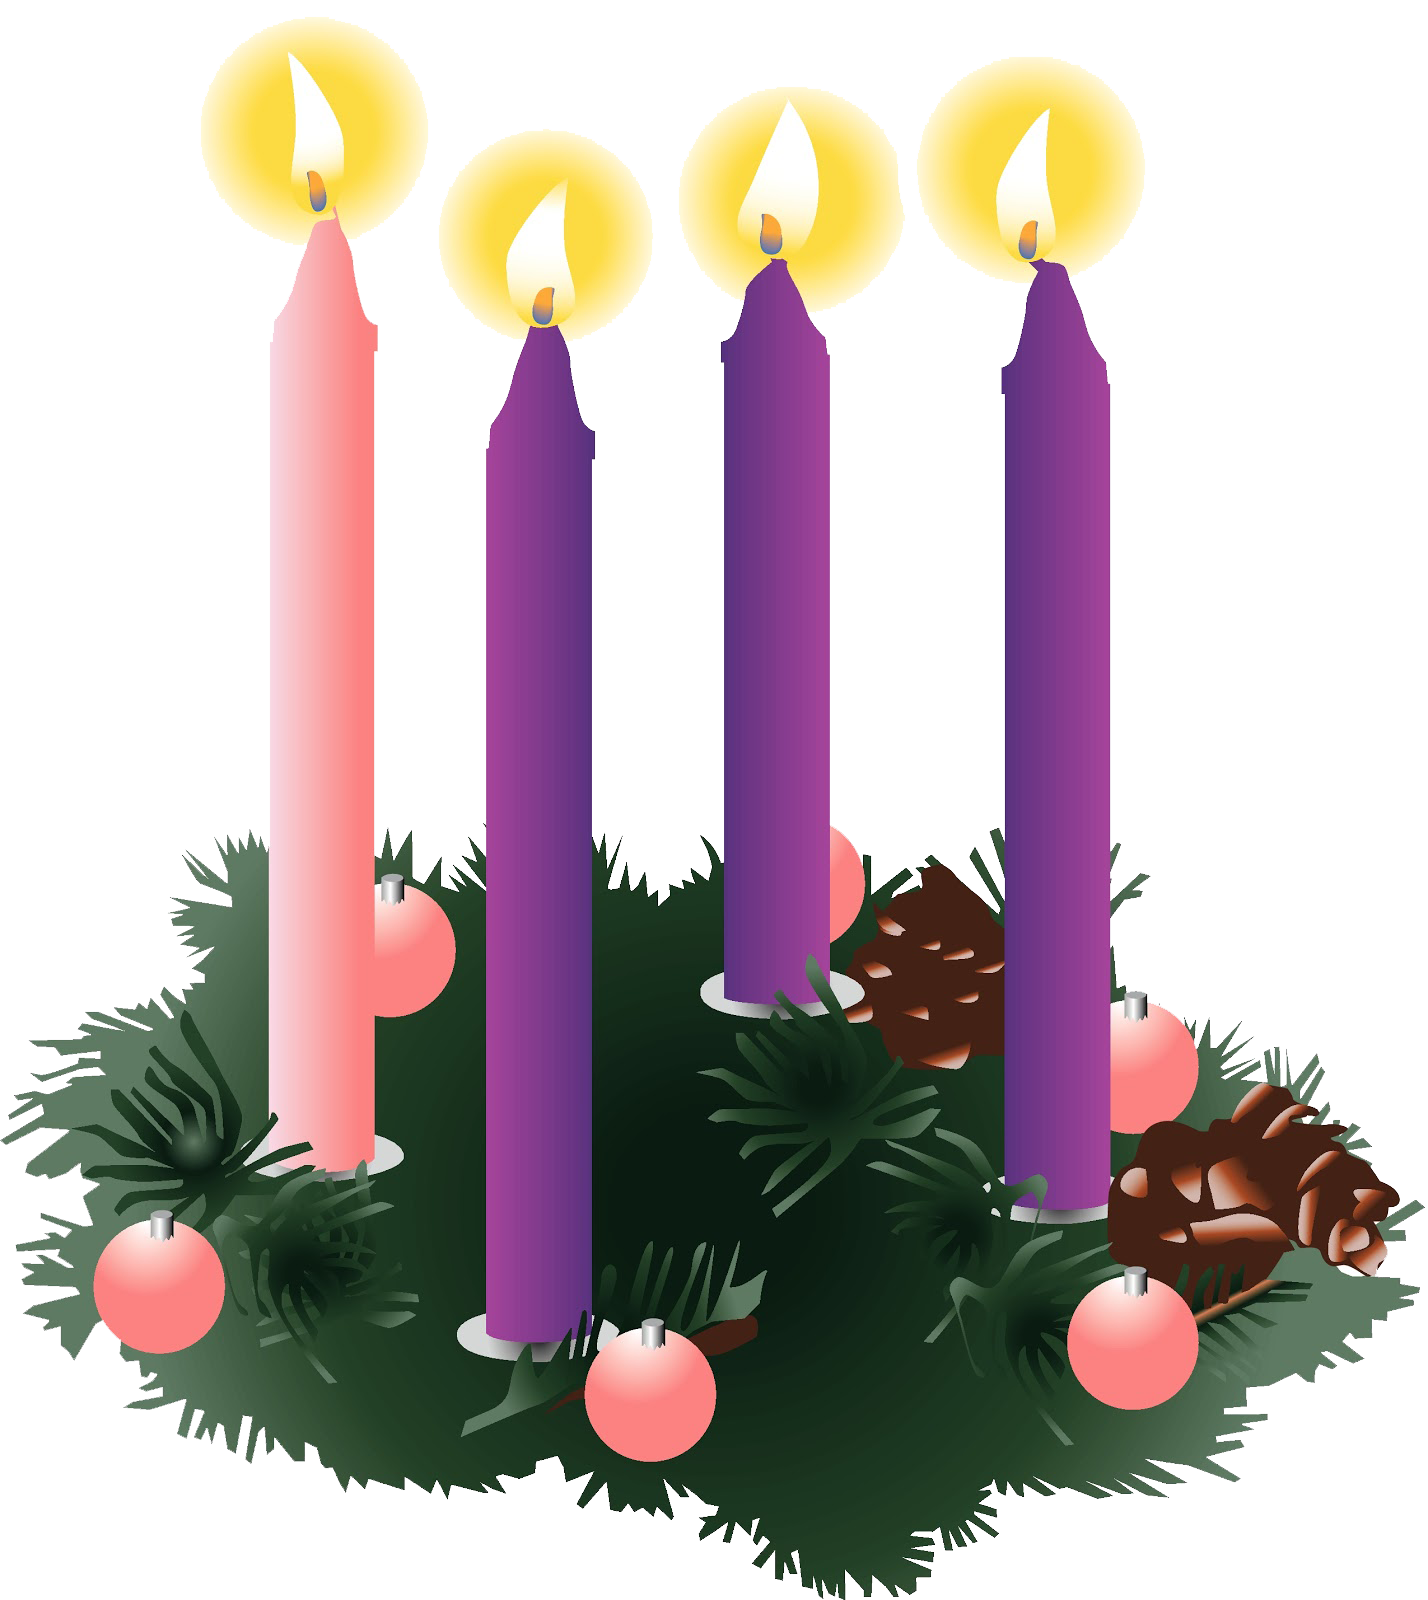 svg free download Wreath th of church. 4th clipart sunday advent.